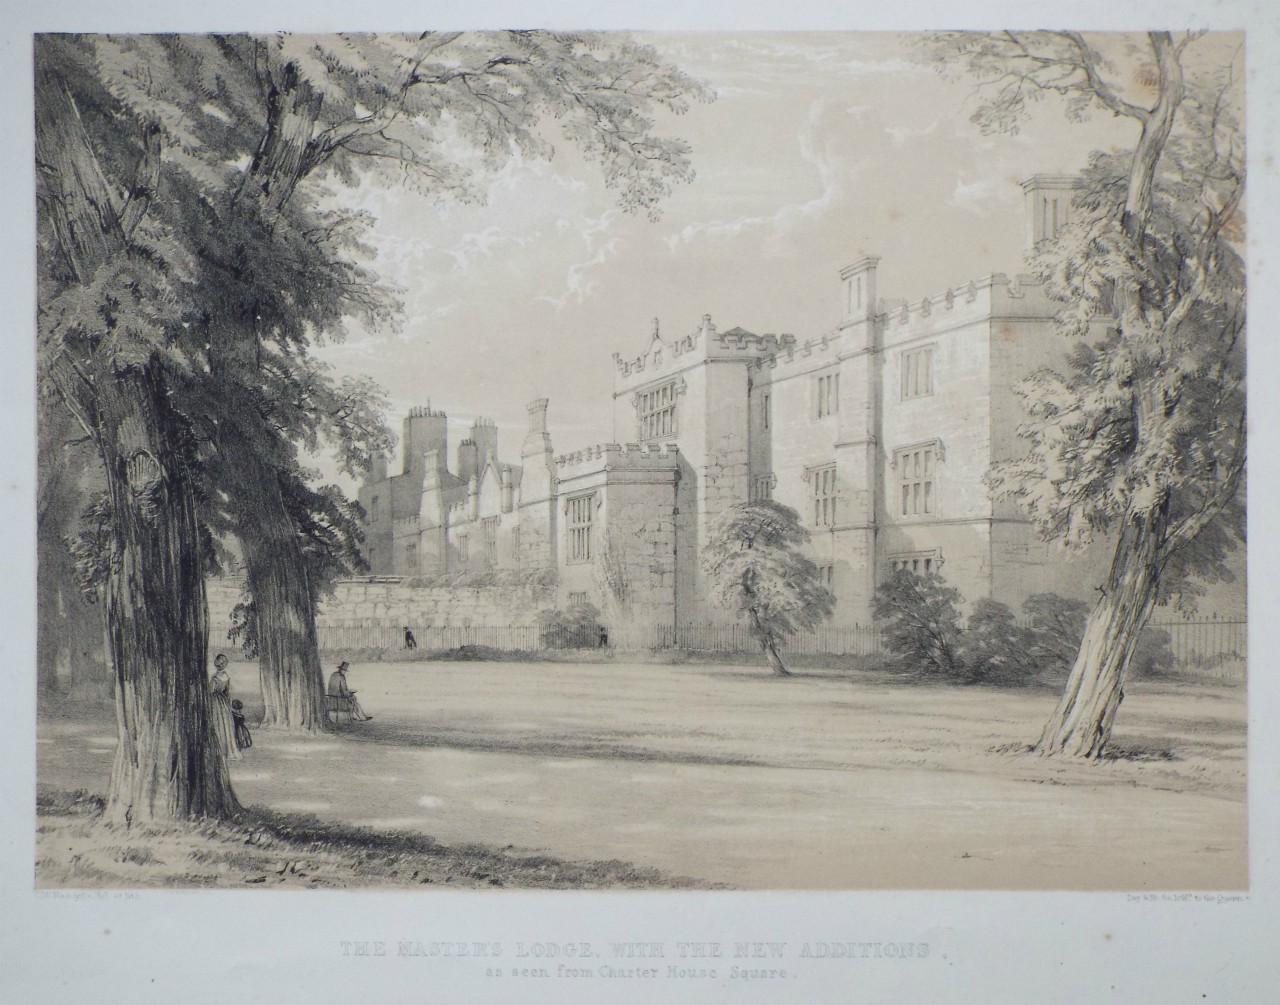 Lithograph - The Master's Lodge, with the New Additions, as seen from Charter House Square. - Radclyffe